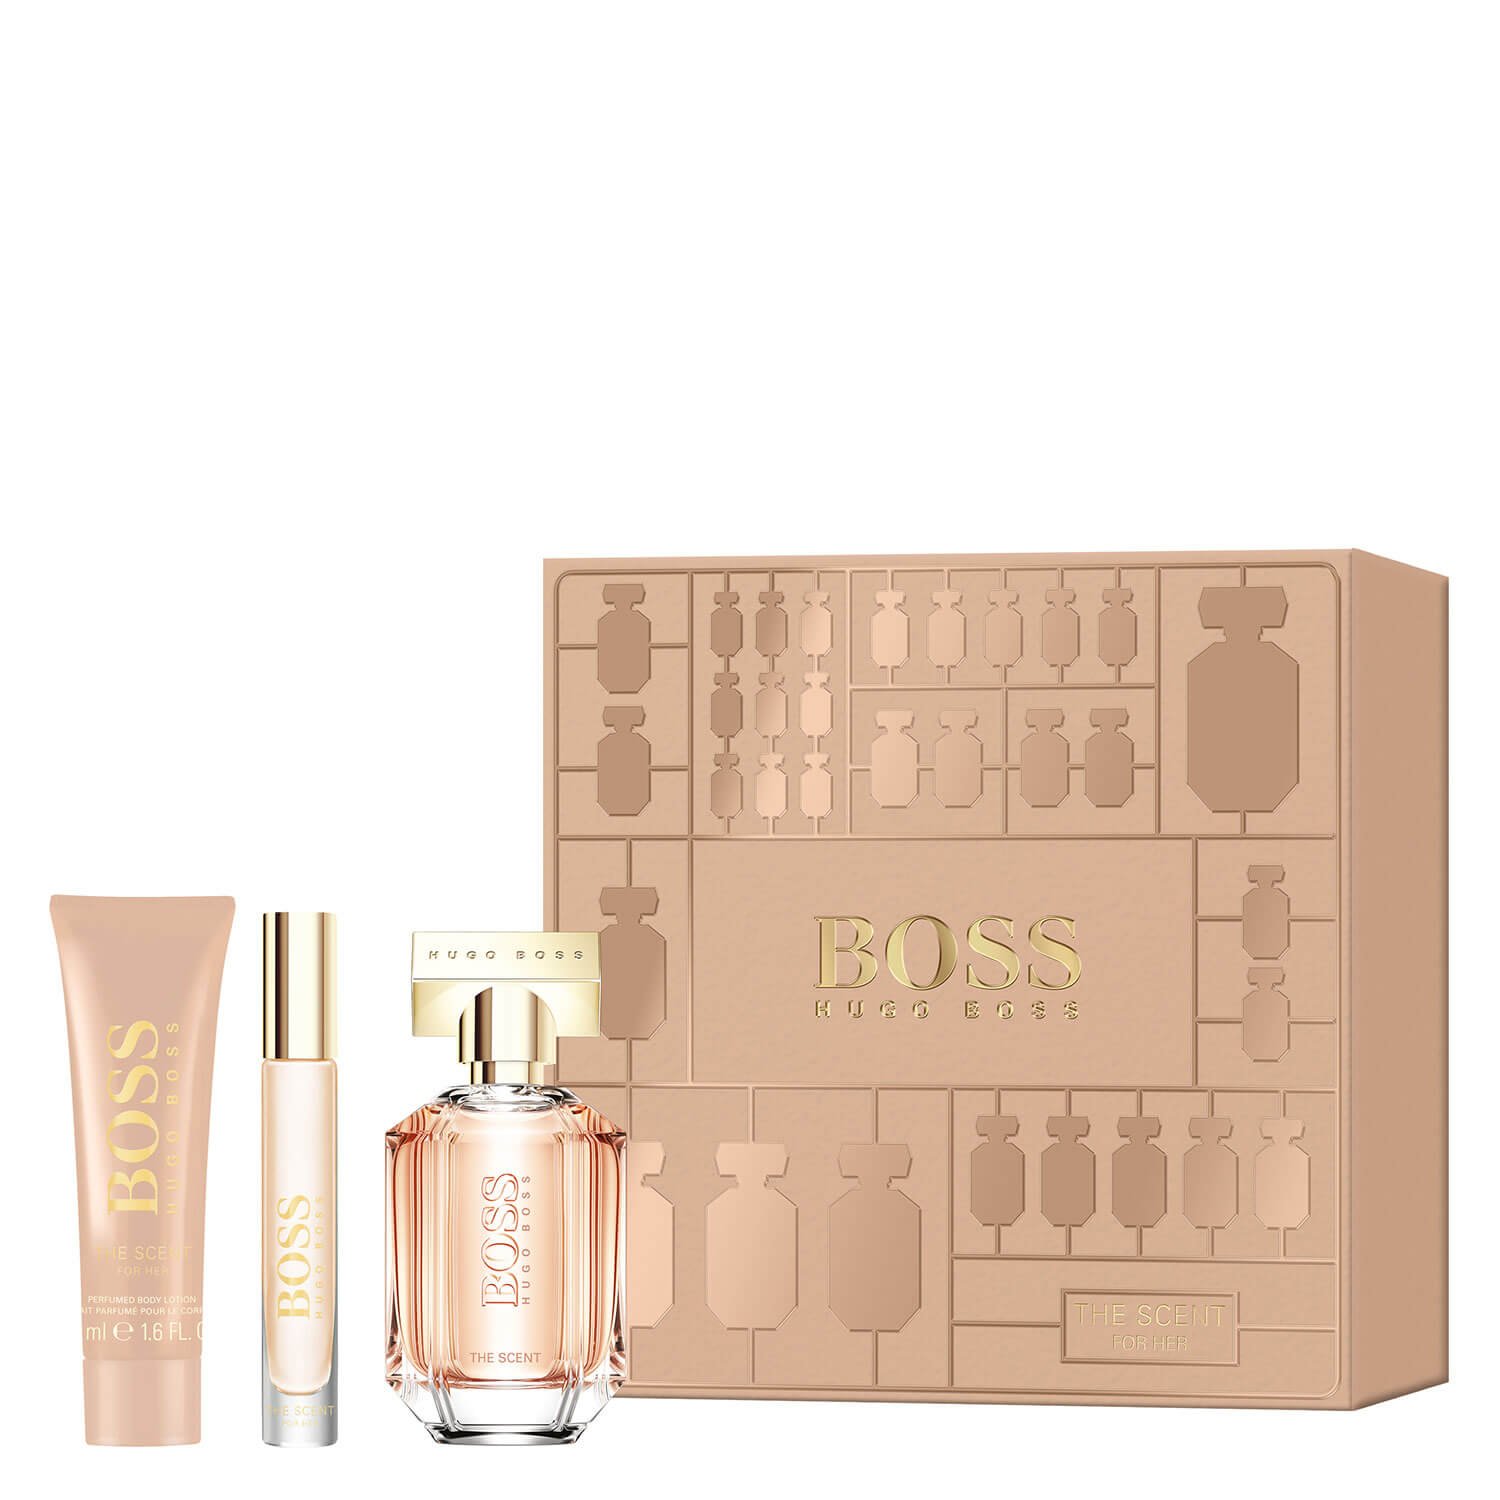 Boss The Scent - Eau de Parfum for Her Set